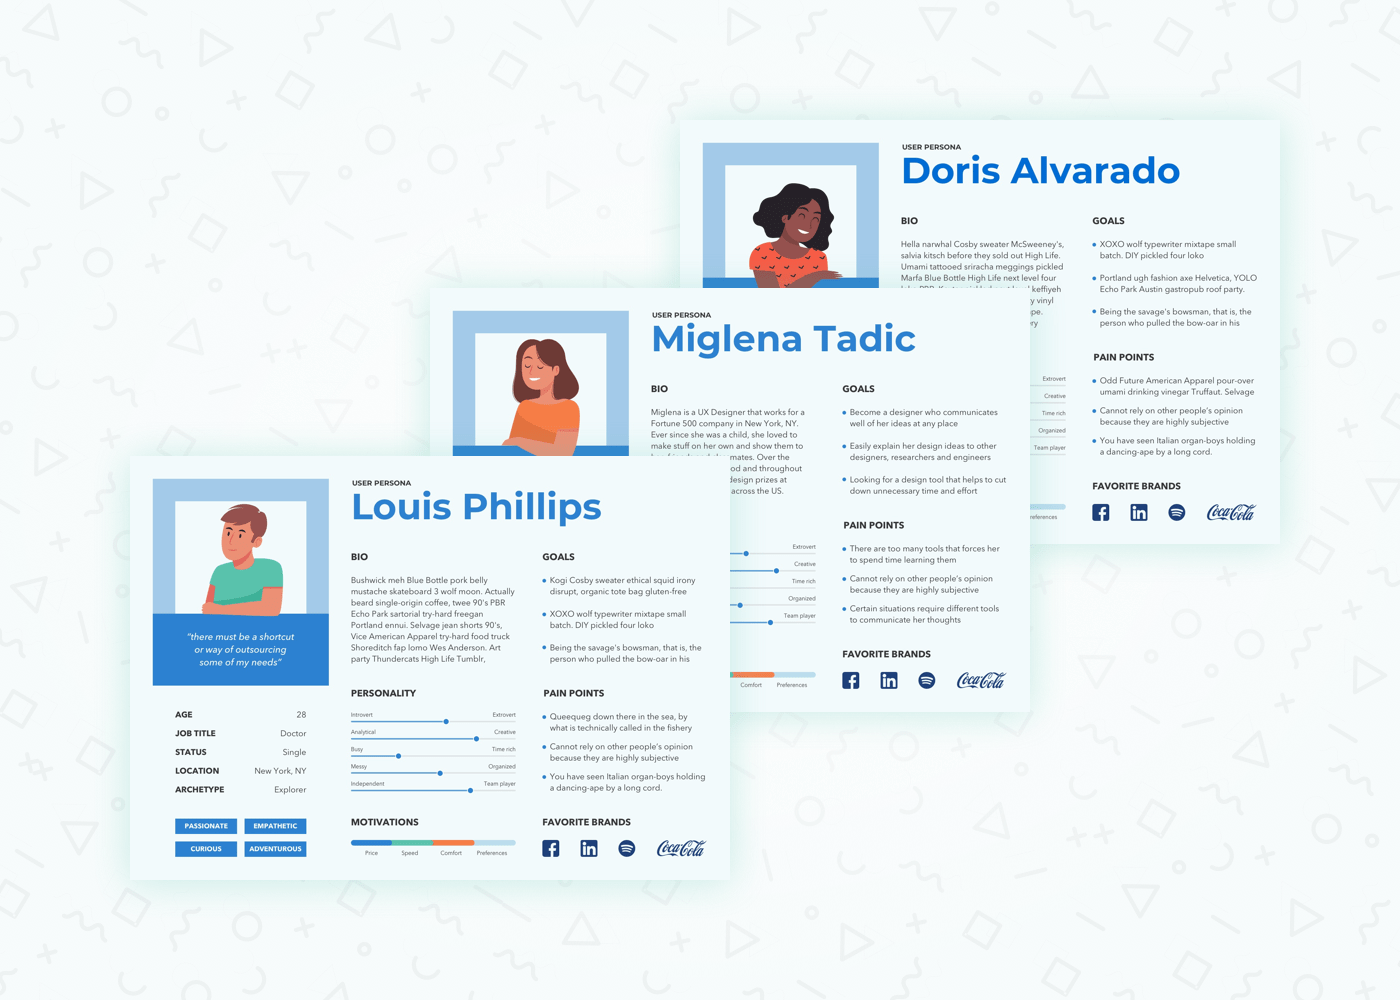 UX audit insights about users